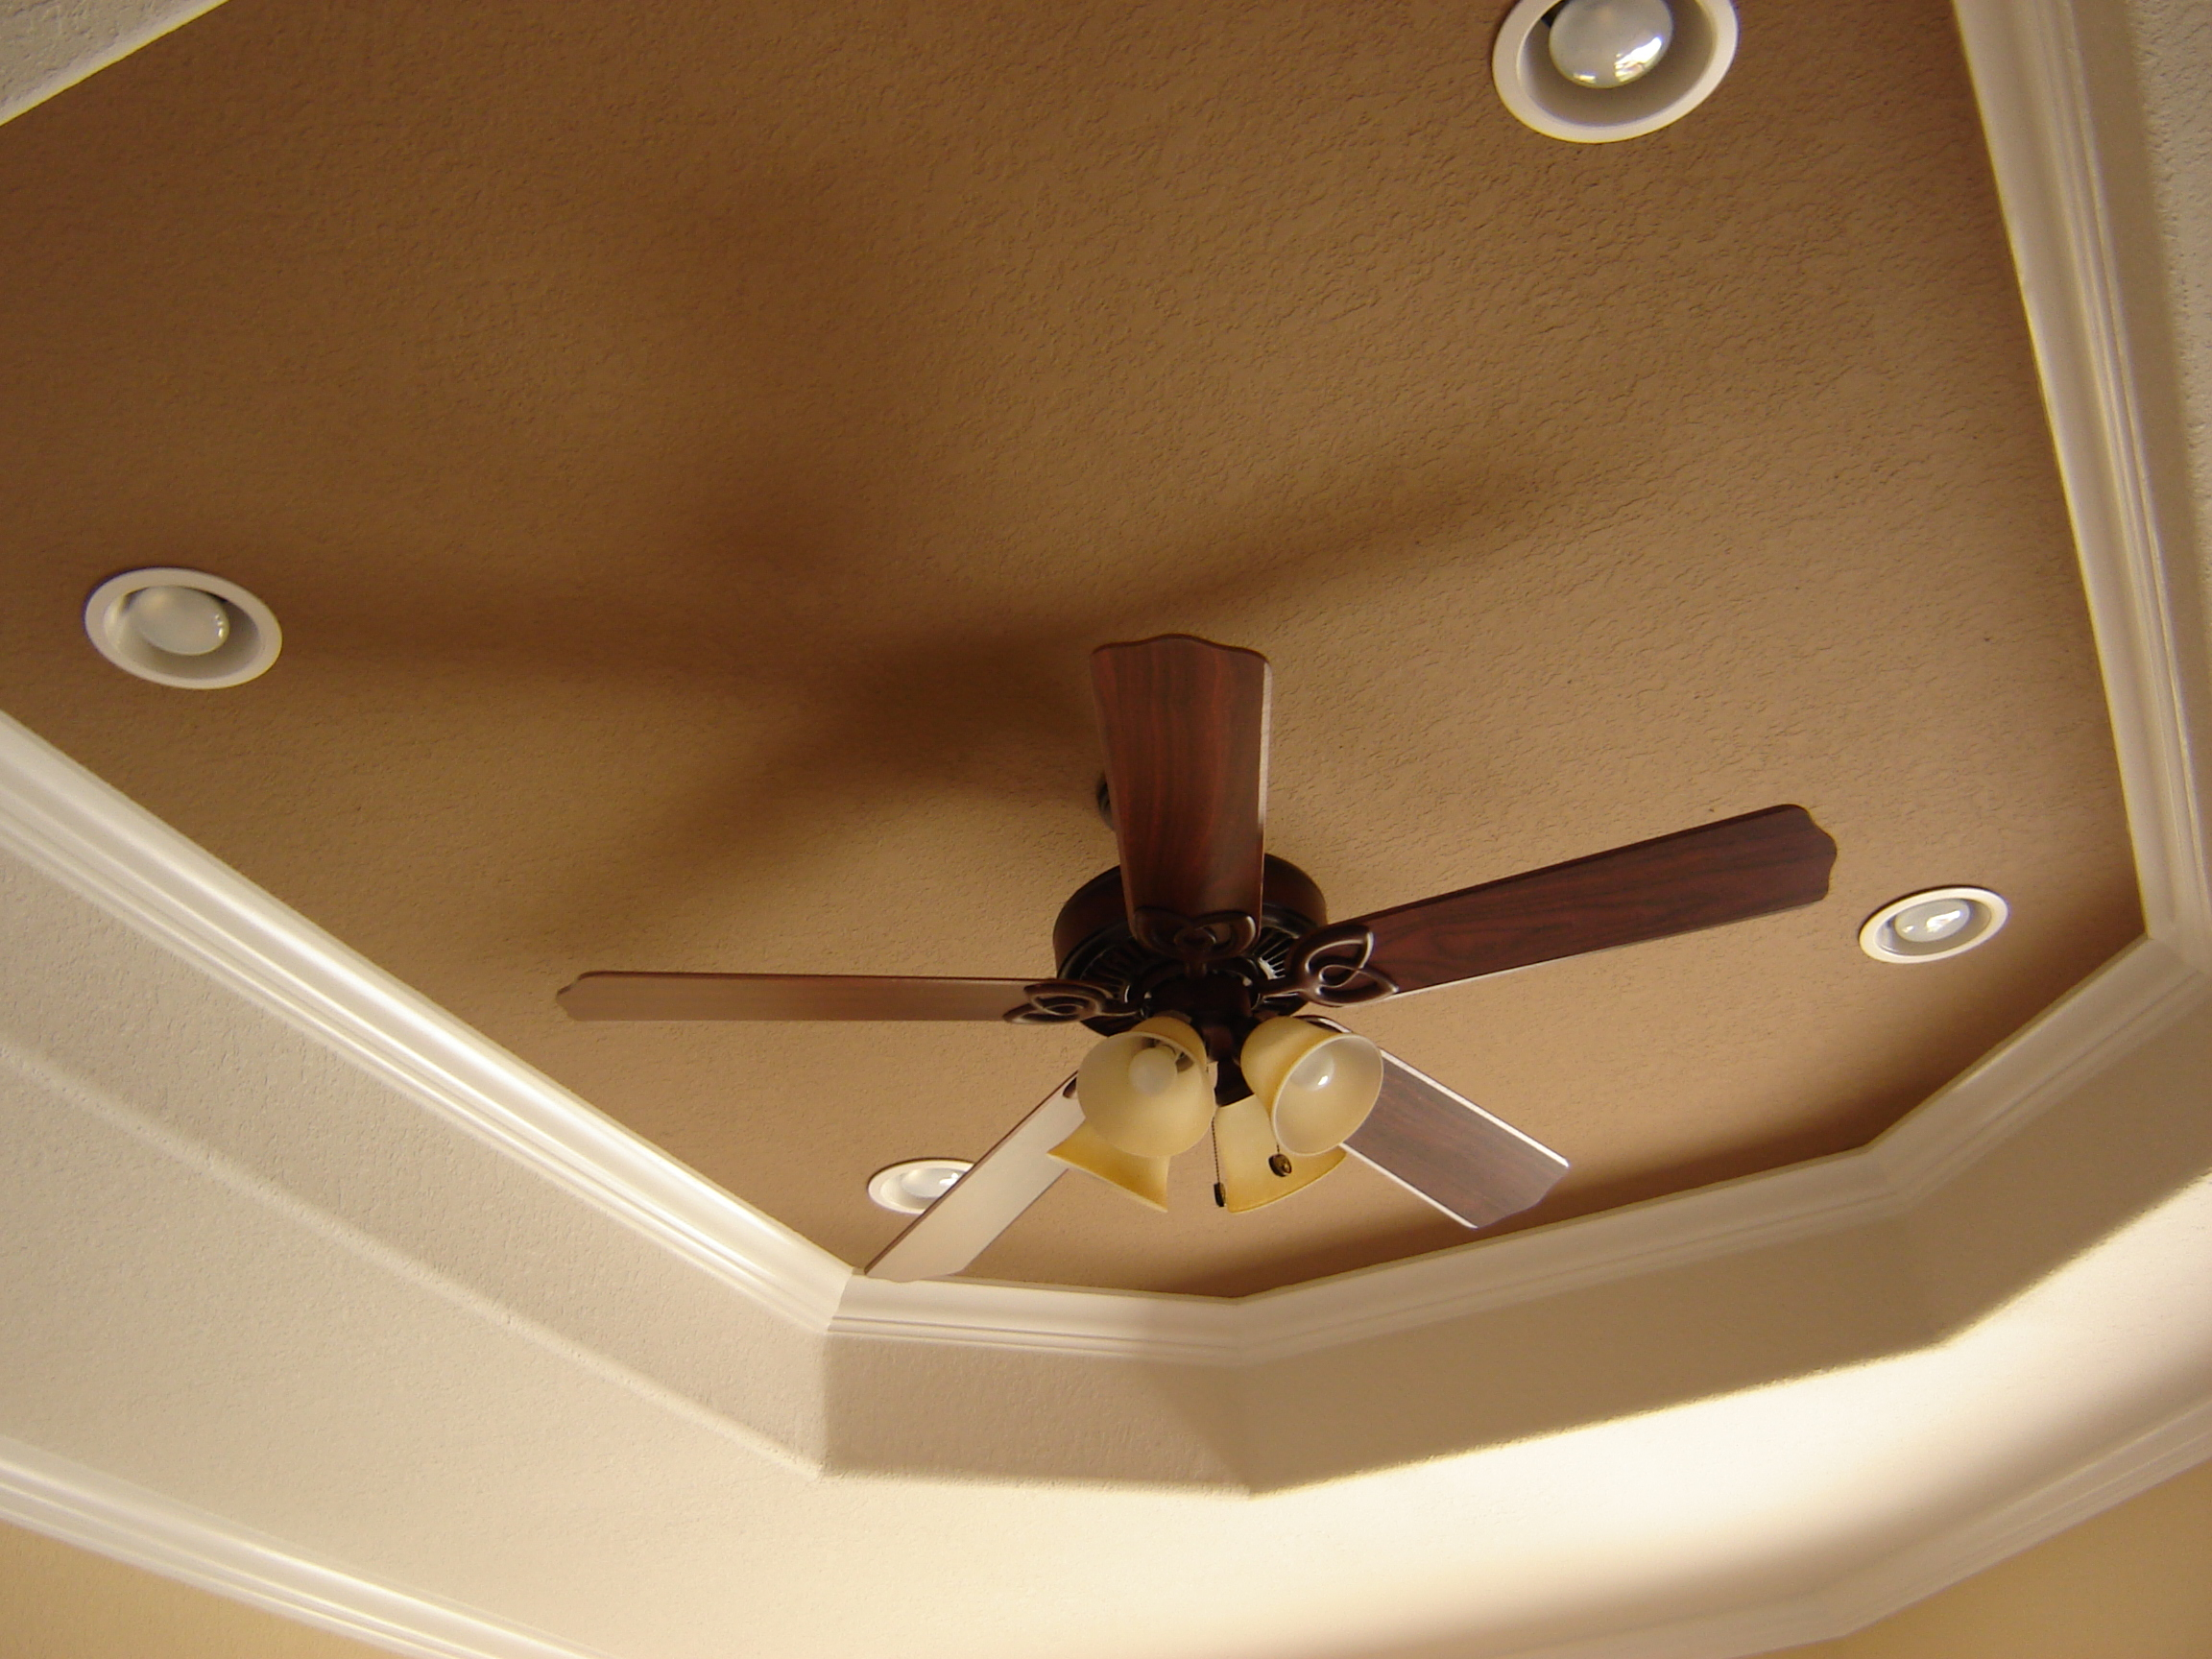 Recessed ceiling fan for a sleek ceiling look homesfeed for Ceiling fan size for room